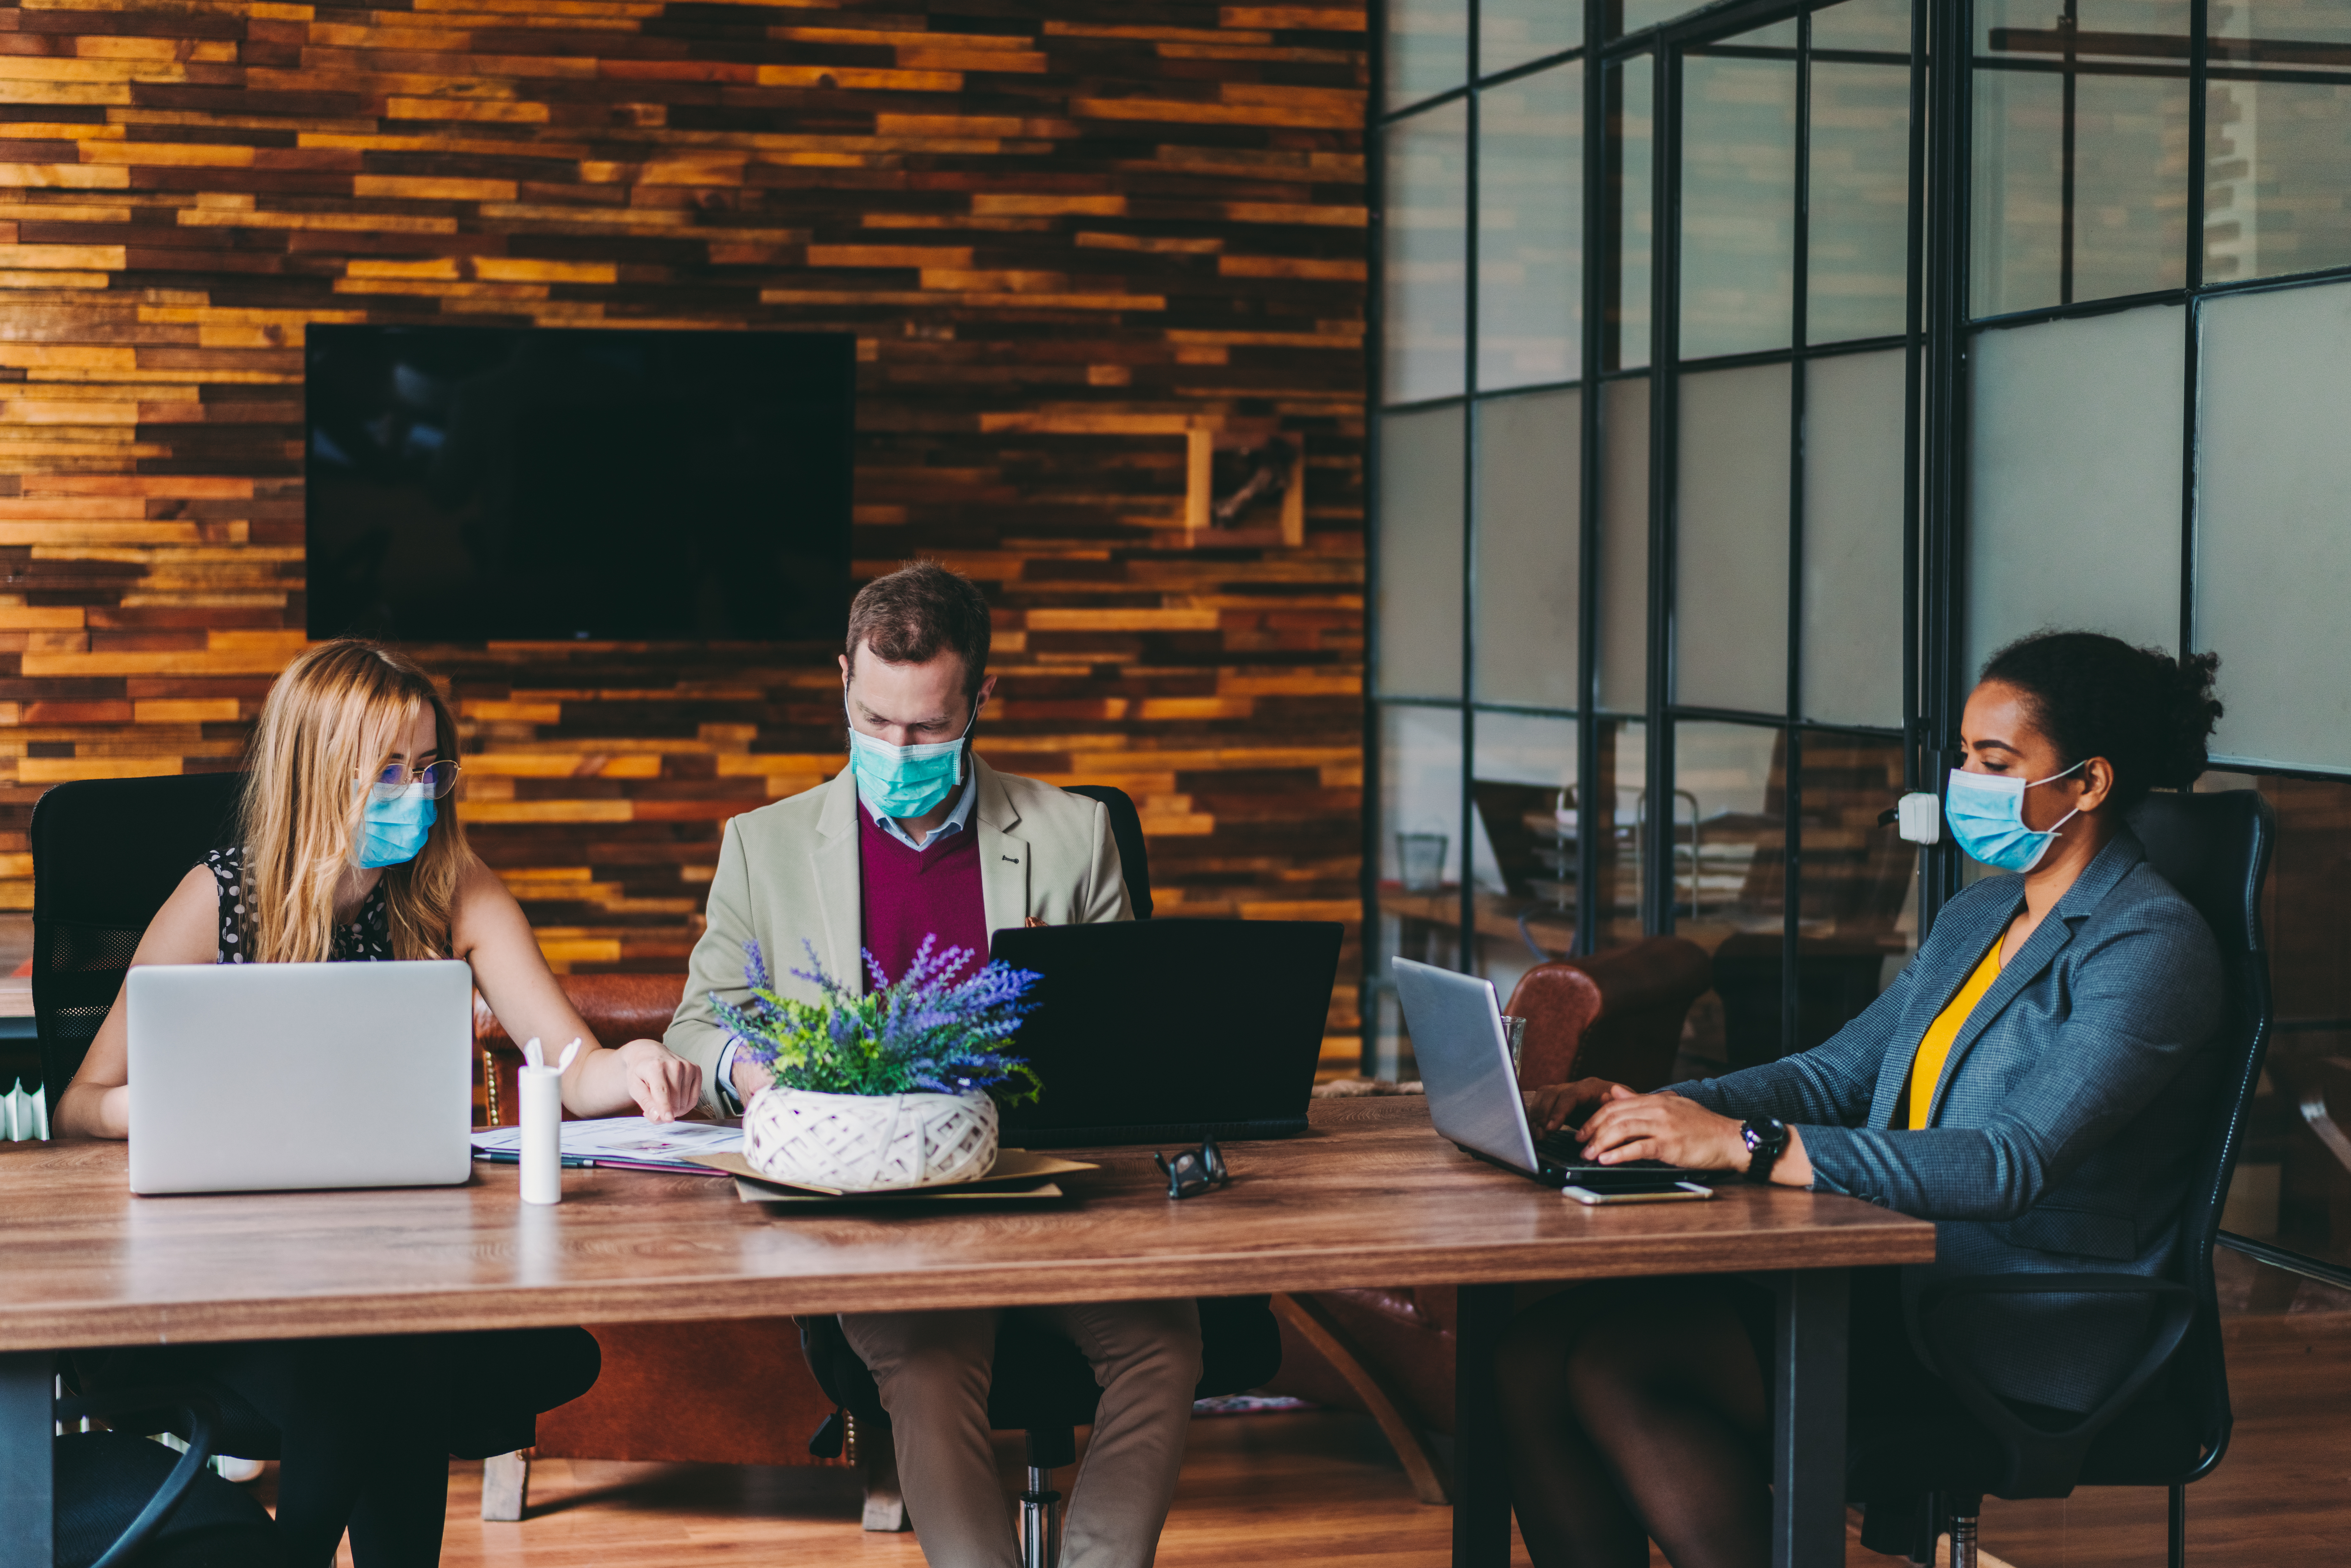 Business group at table with masks